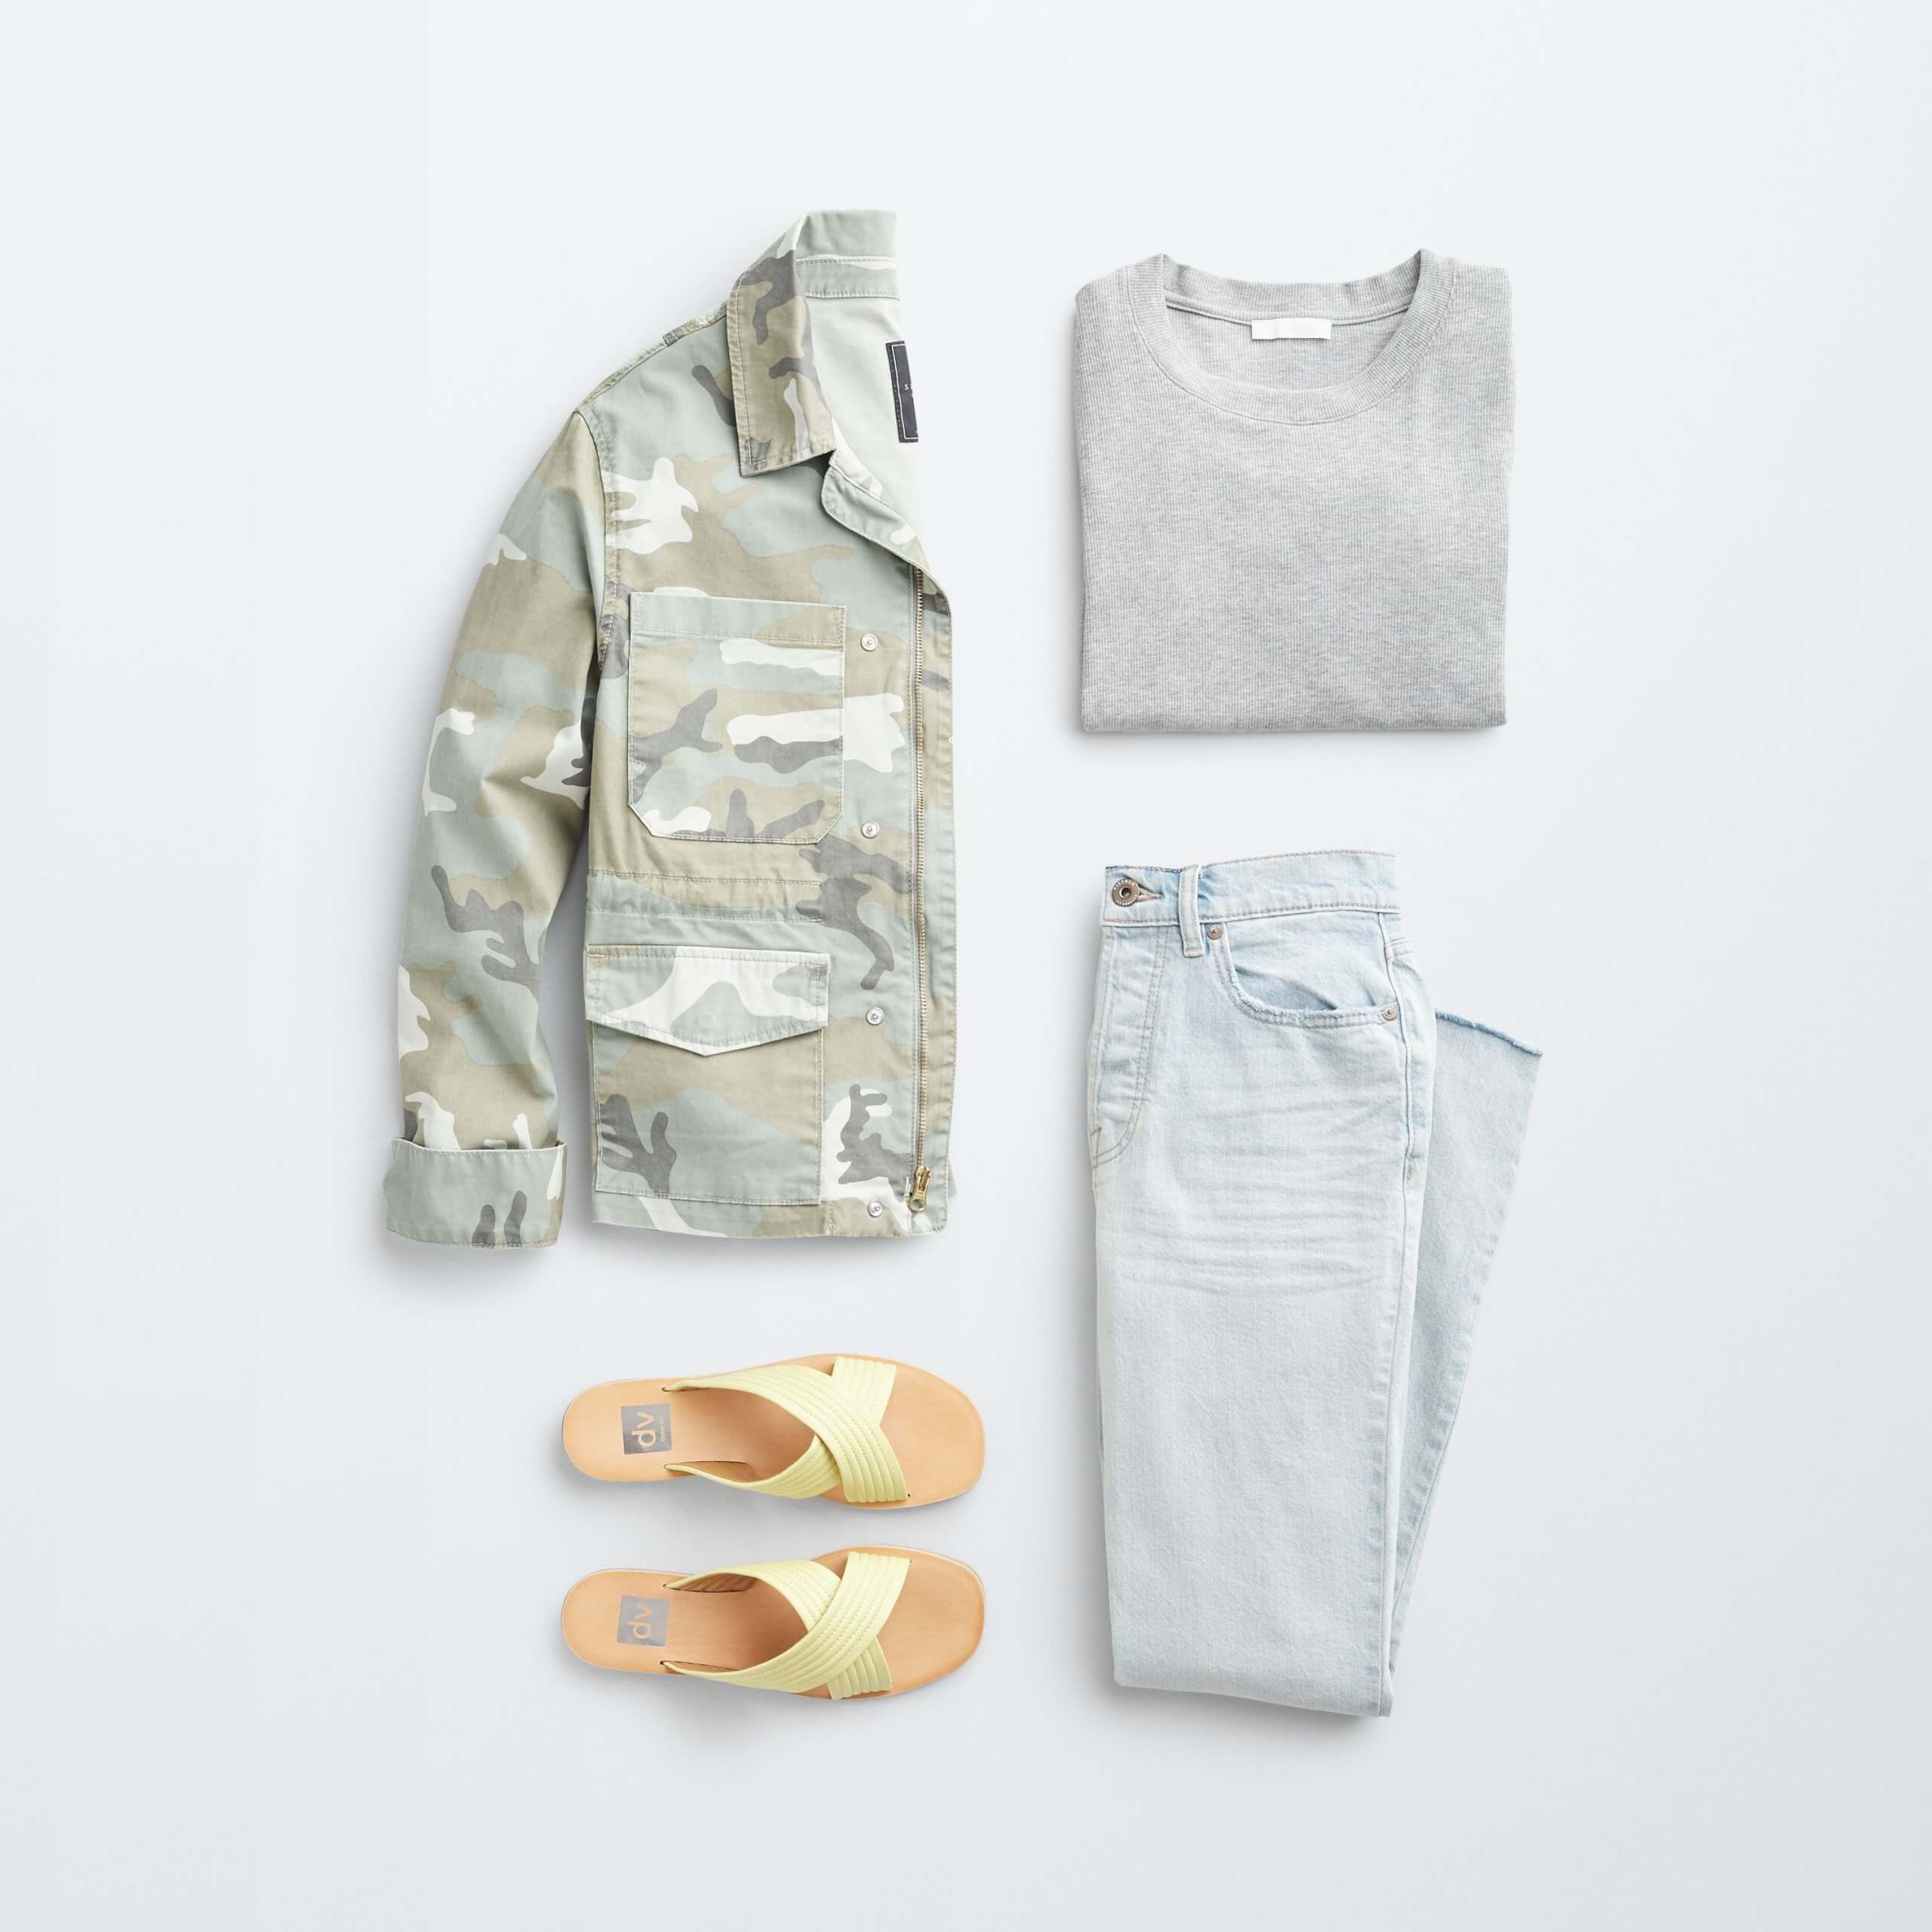 Stitch Fix women's outfit laydown featuring green camo utility jacket, grey pullover, light wash jeans and yellow slide sandals.